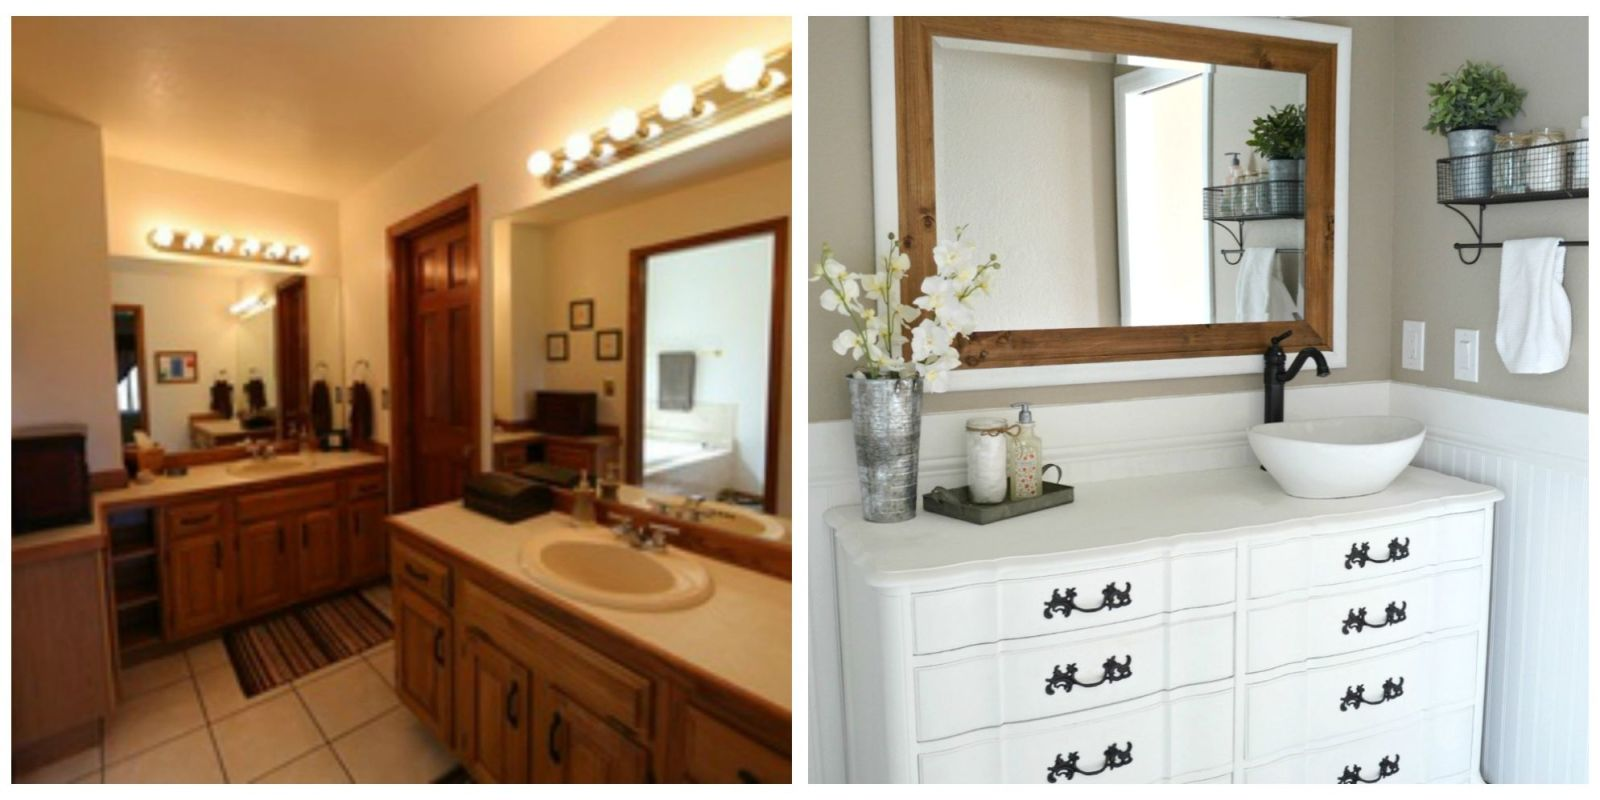 5 Brilliant Design Ideas From This Elegant Farmhouse Bathroom Renovation U2014  Master Bathroom Makeover